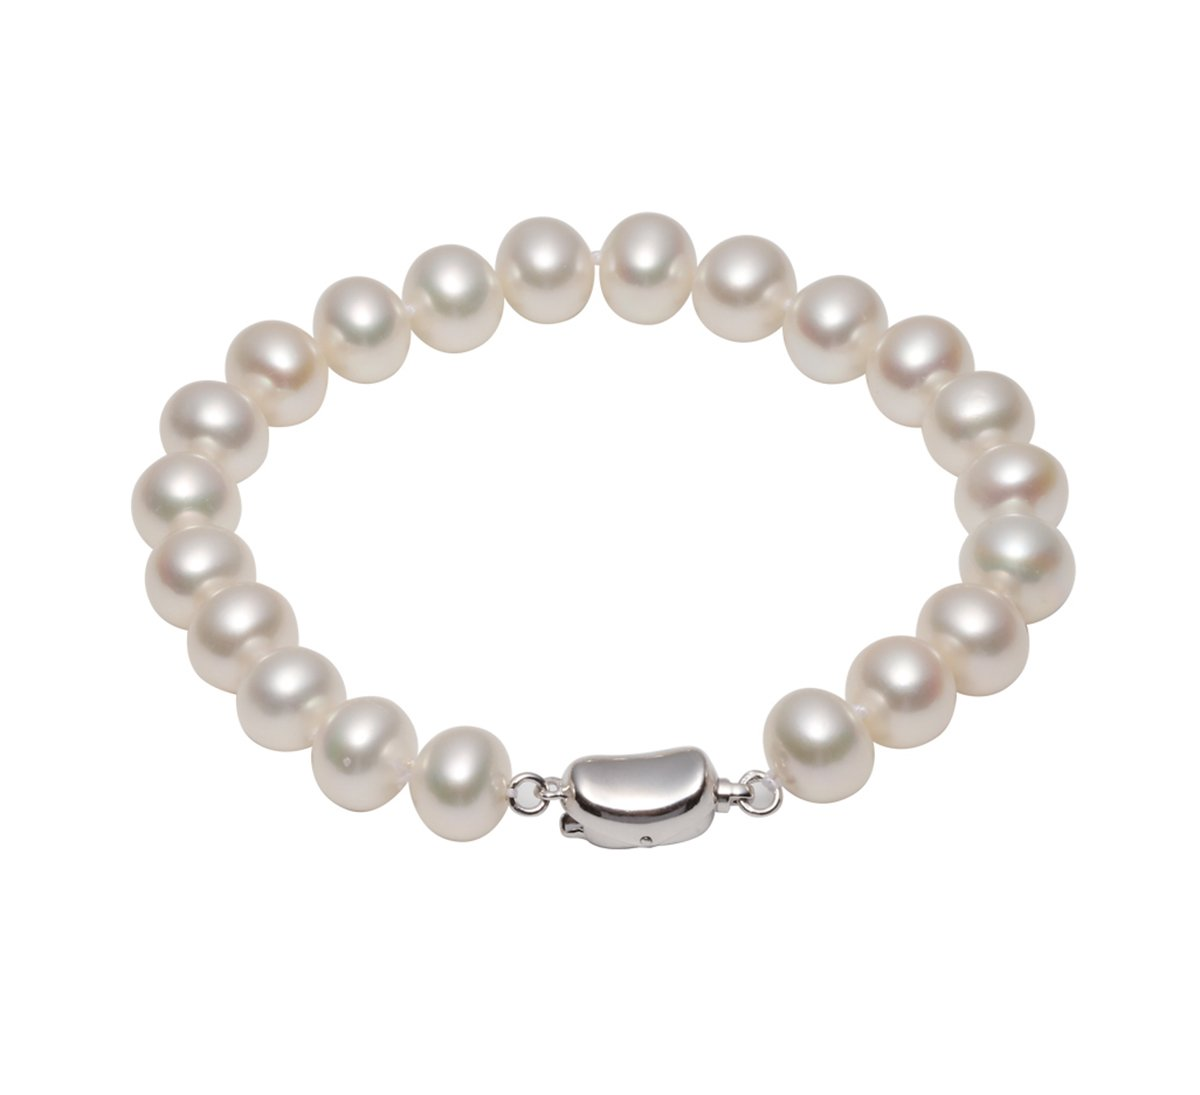 AIDNI 8-8.5mm AAA Quality Freshwater Cultured White Round Pearl Bracelet